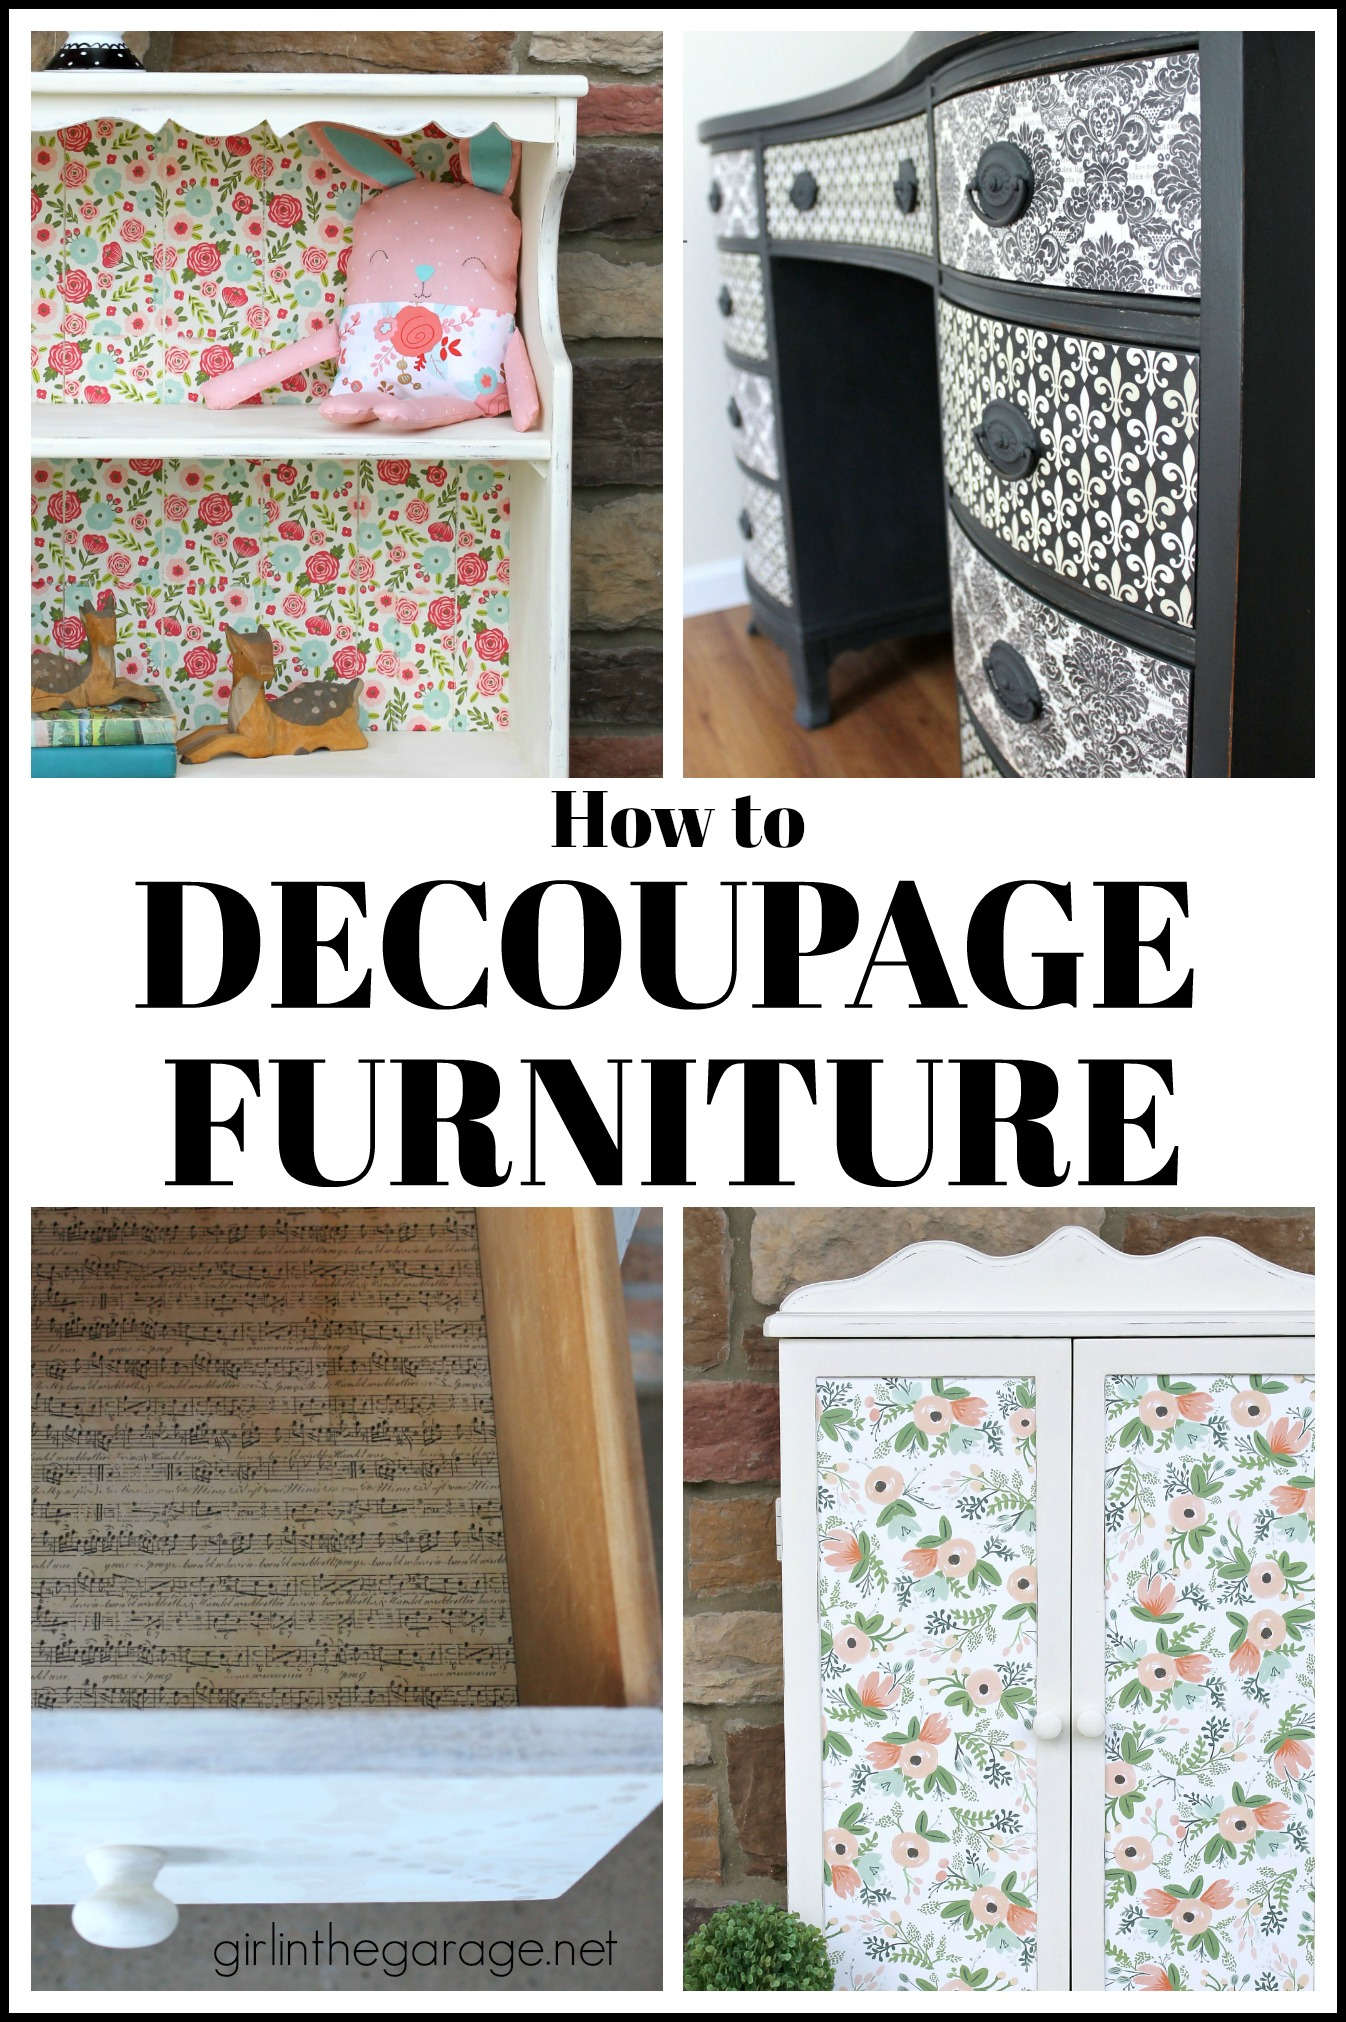 How to Decoupage Furniture - Girl in the Garage